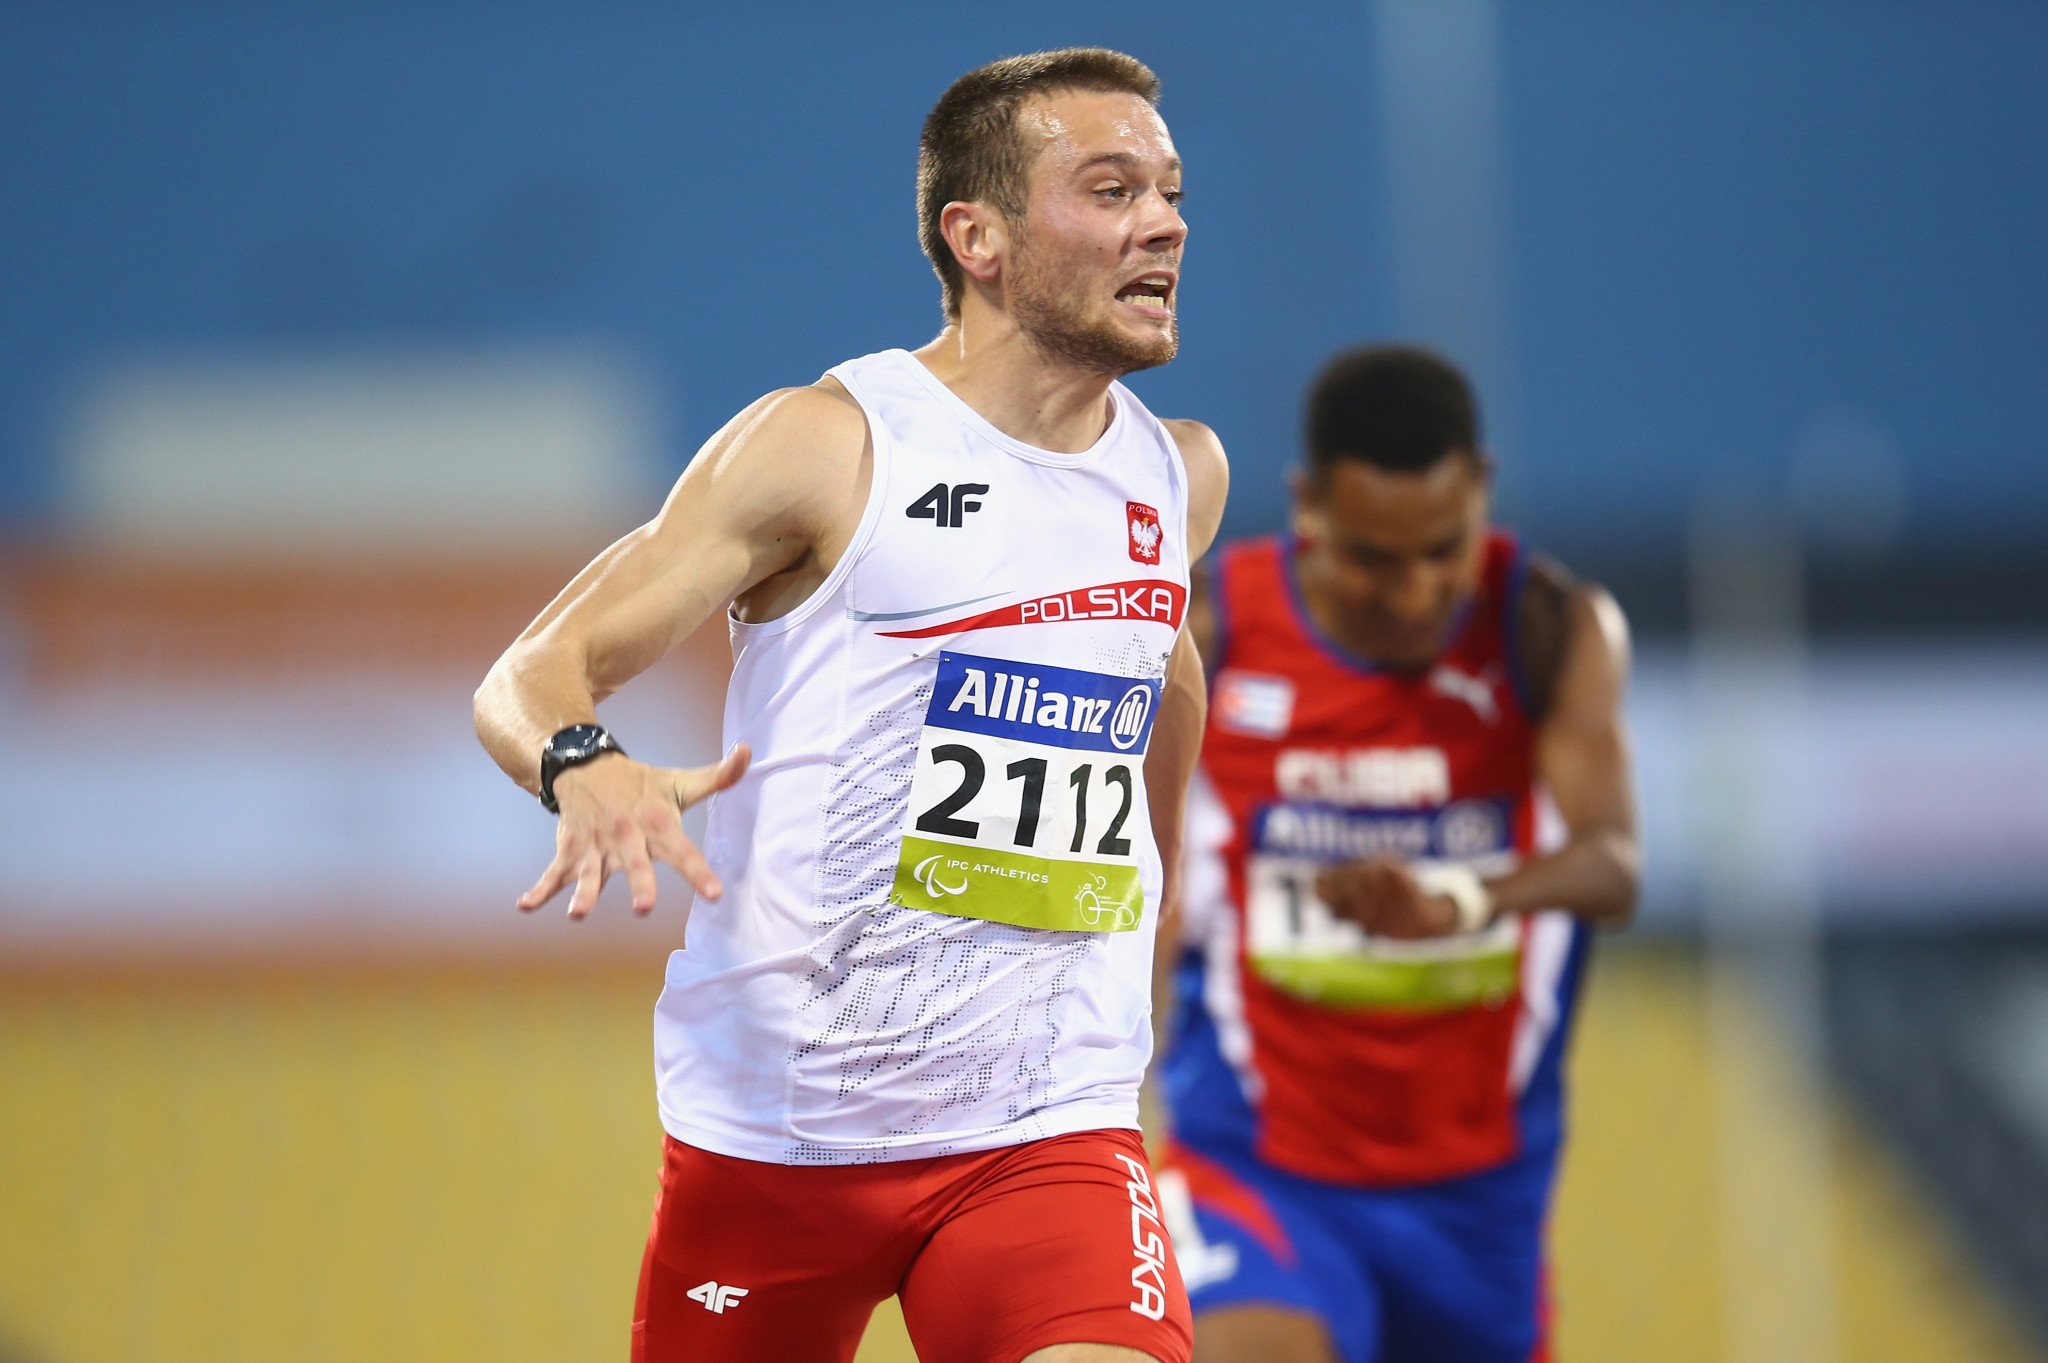 Sprinter Michał Derus was among Poland's star performers when the country topped the medal table at the 2018 World Para Athletics European Championships in Berlin ©Getty Images